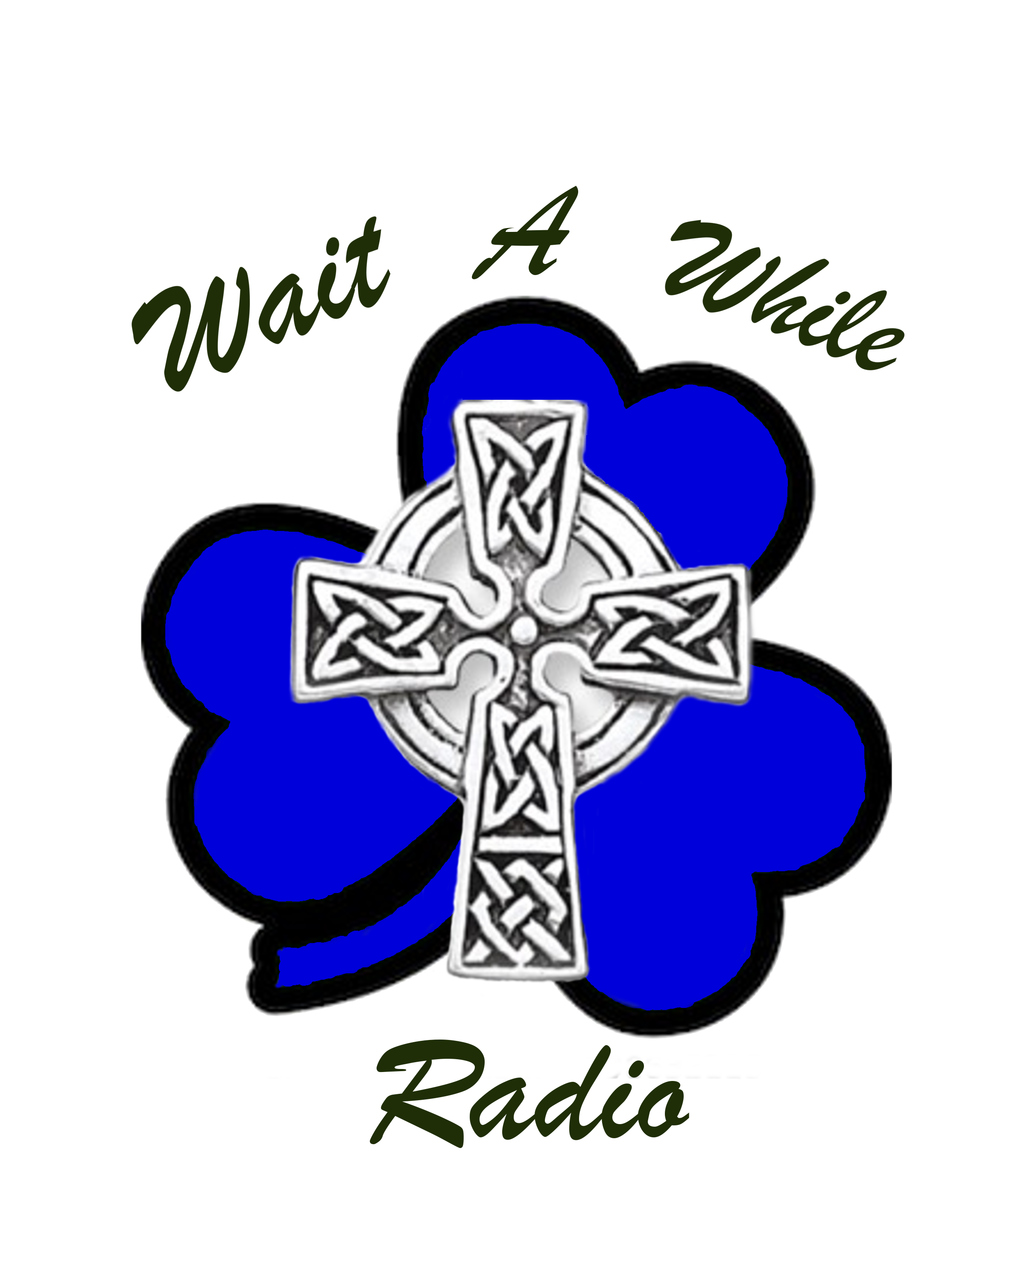 The waitawhileradio's Podcast